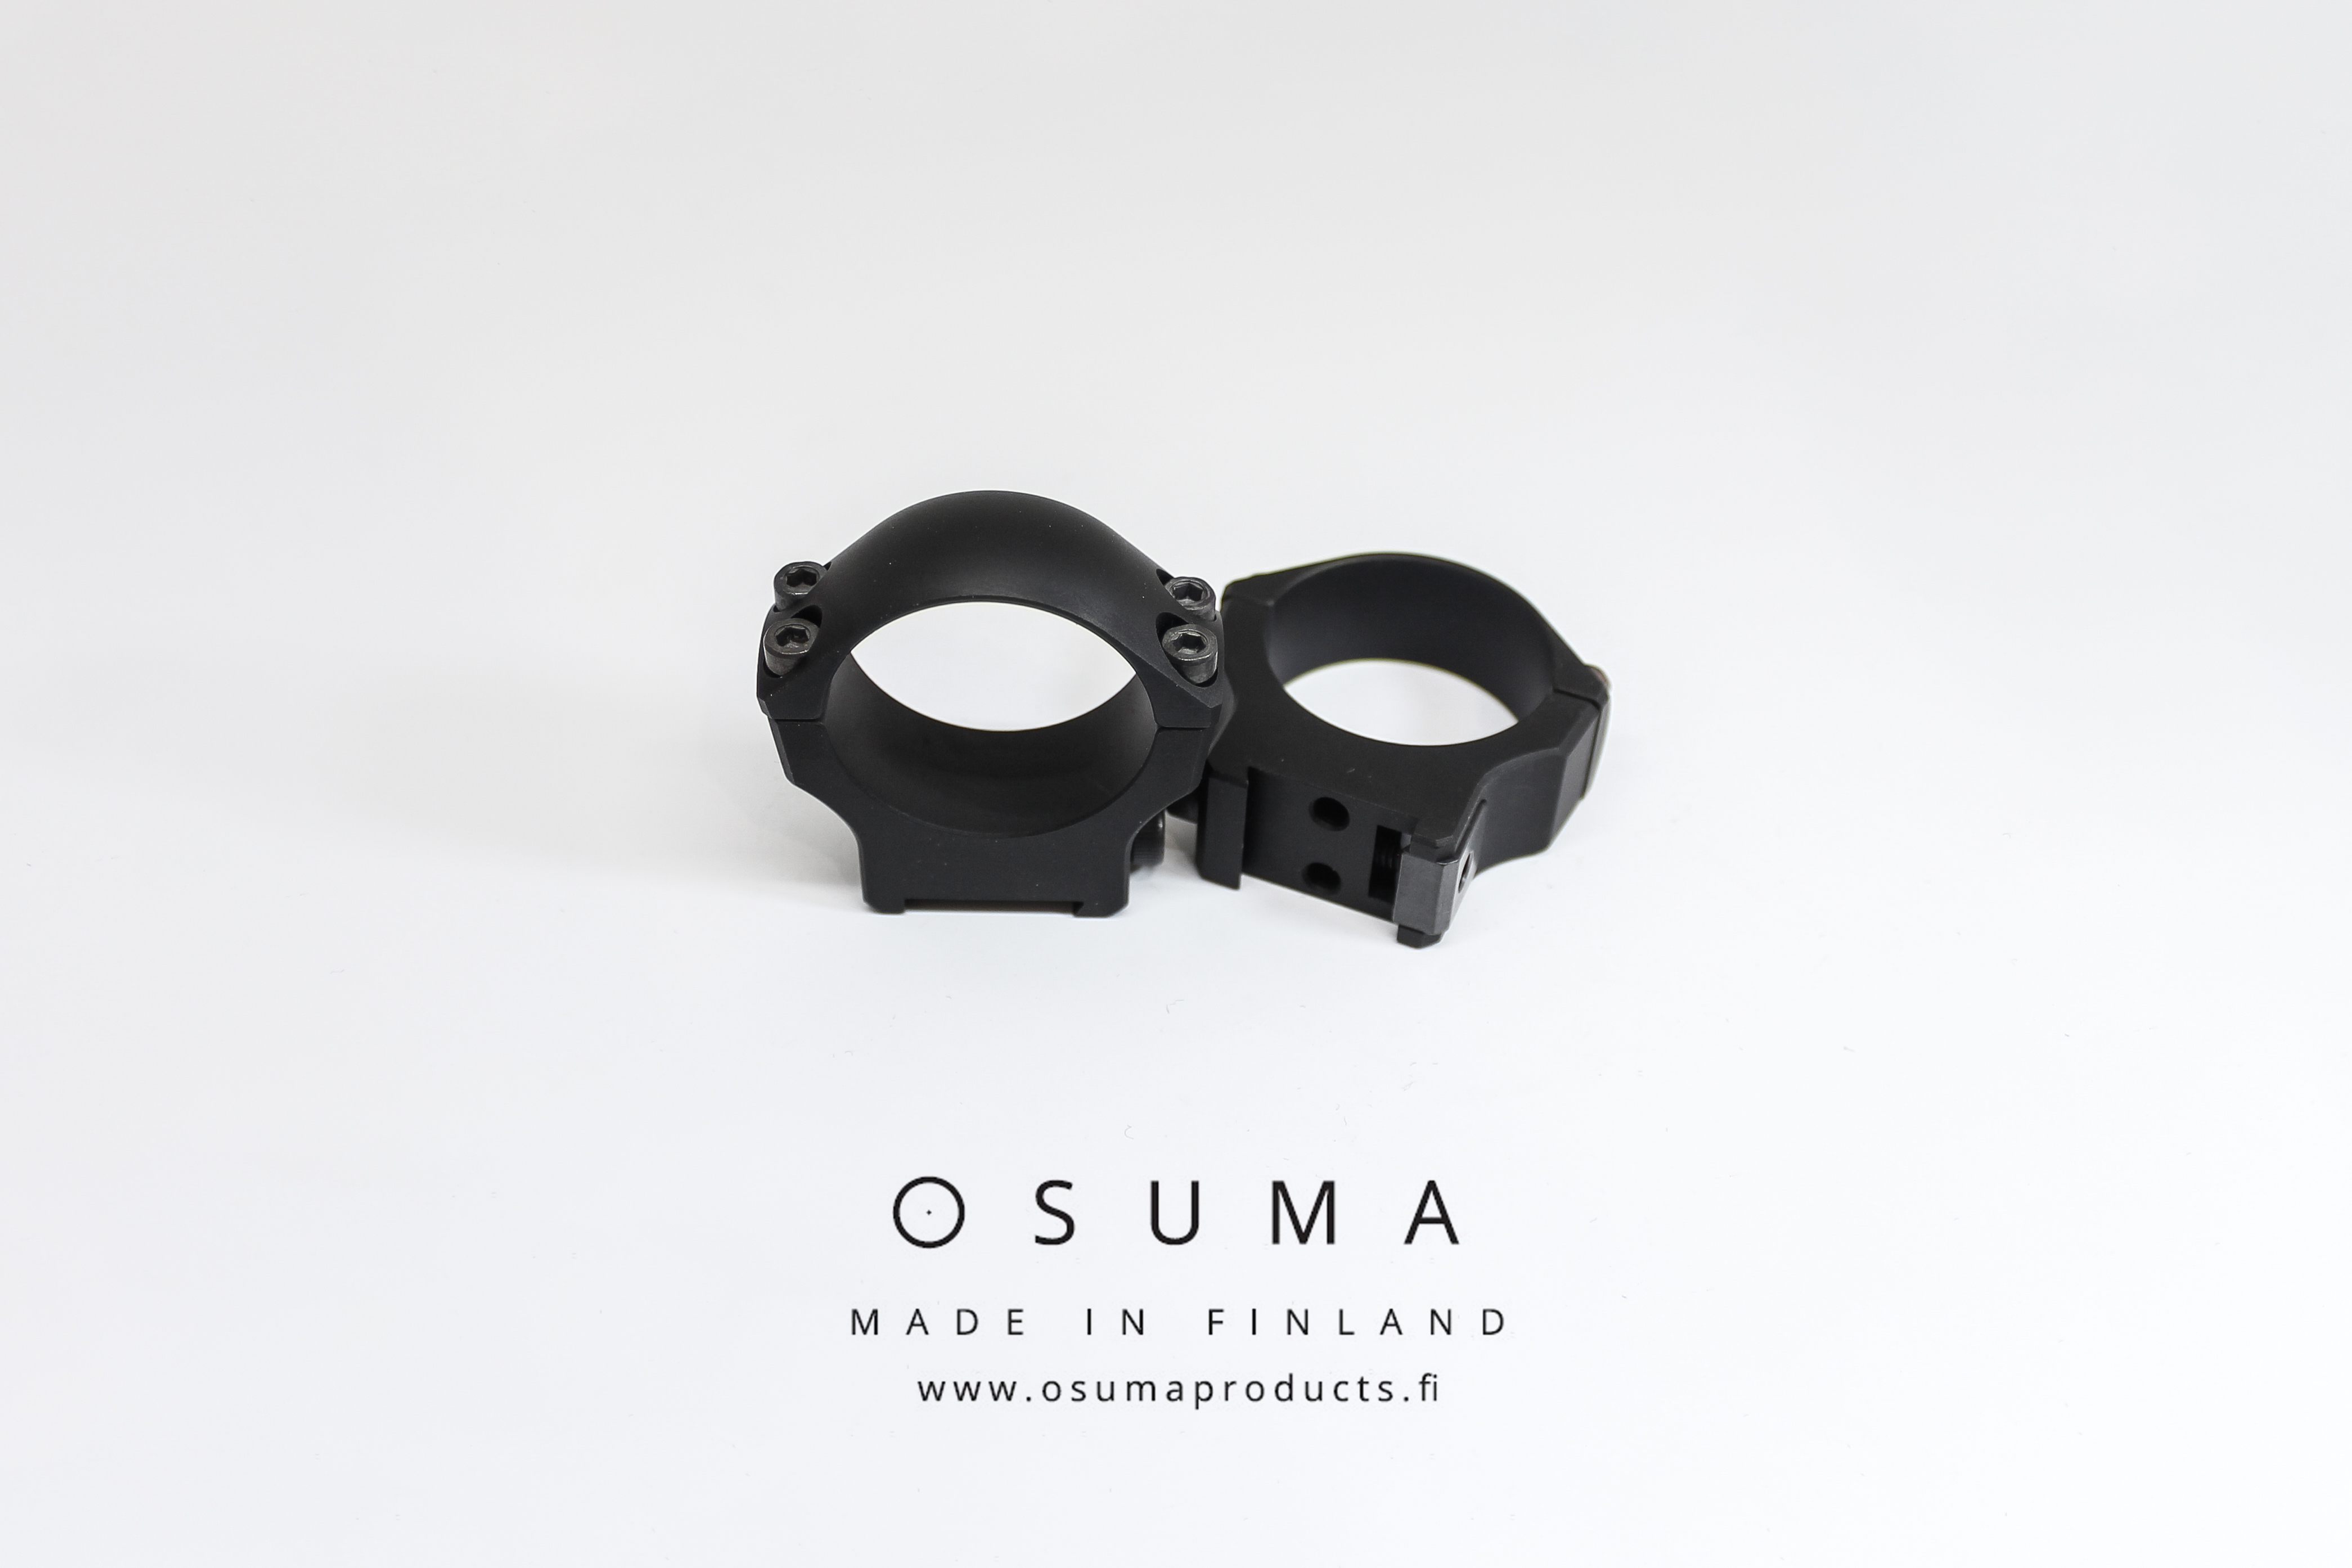 Osuma kiikarinjalka 36mm matala Picatinny OUTLET